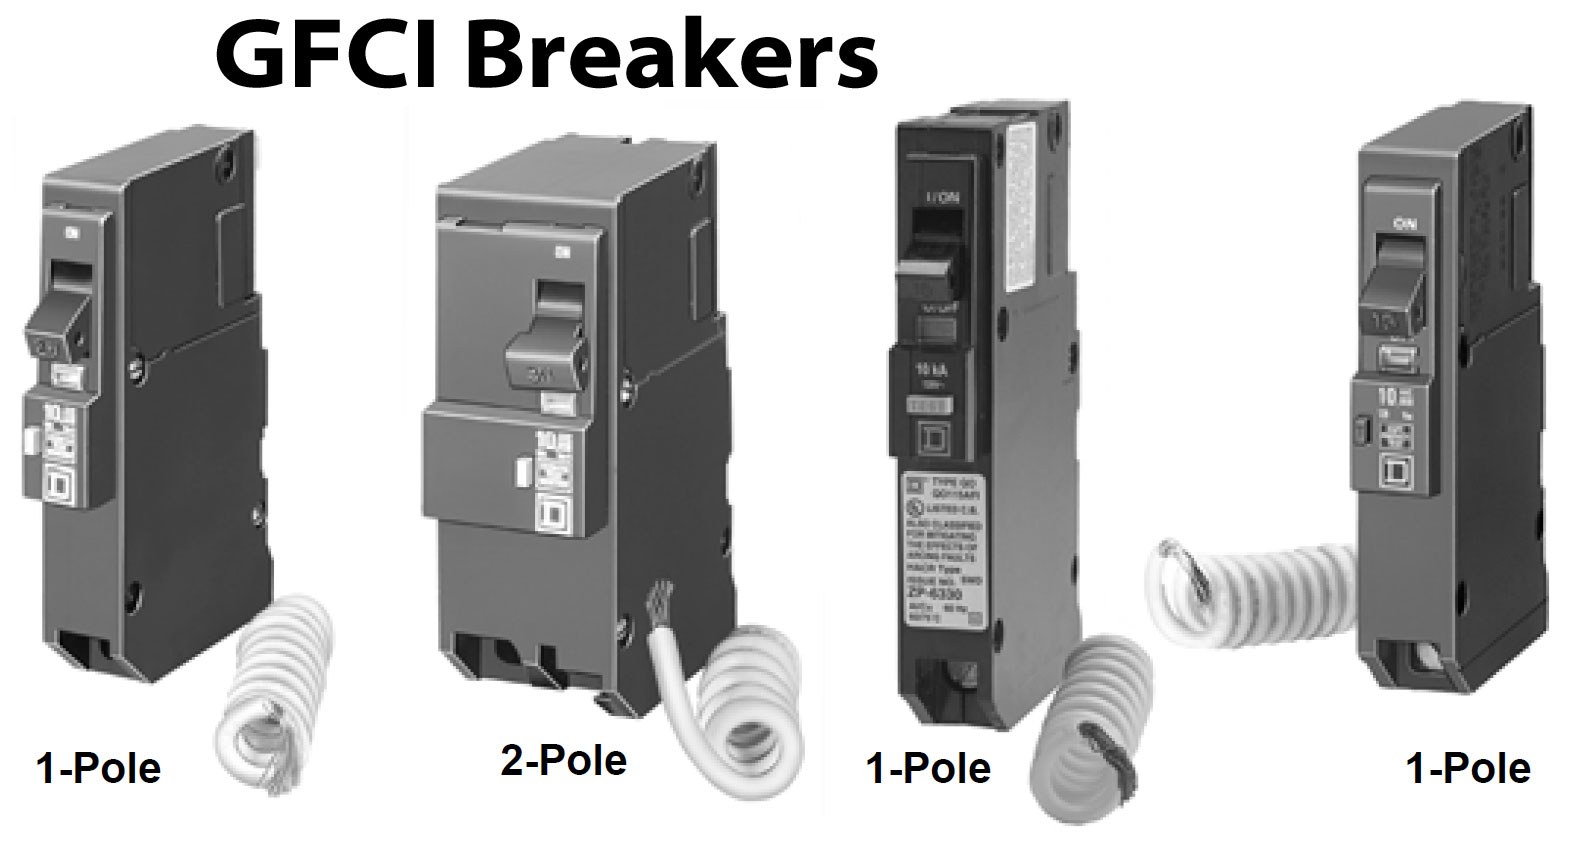 GFCI breakers 1000 how to wire gfci afci circuit breaker 240 volt gfci breaker wiring diagram at readyjetset.co